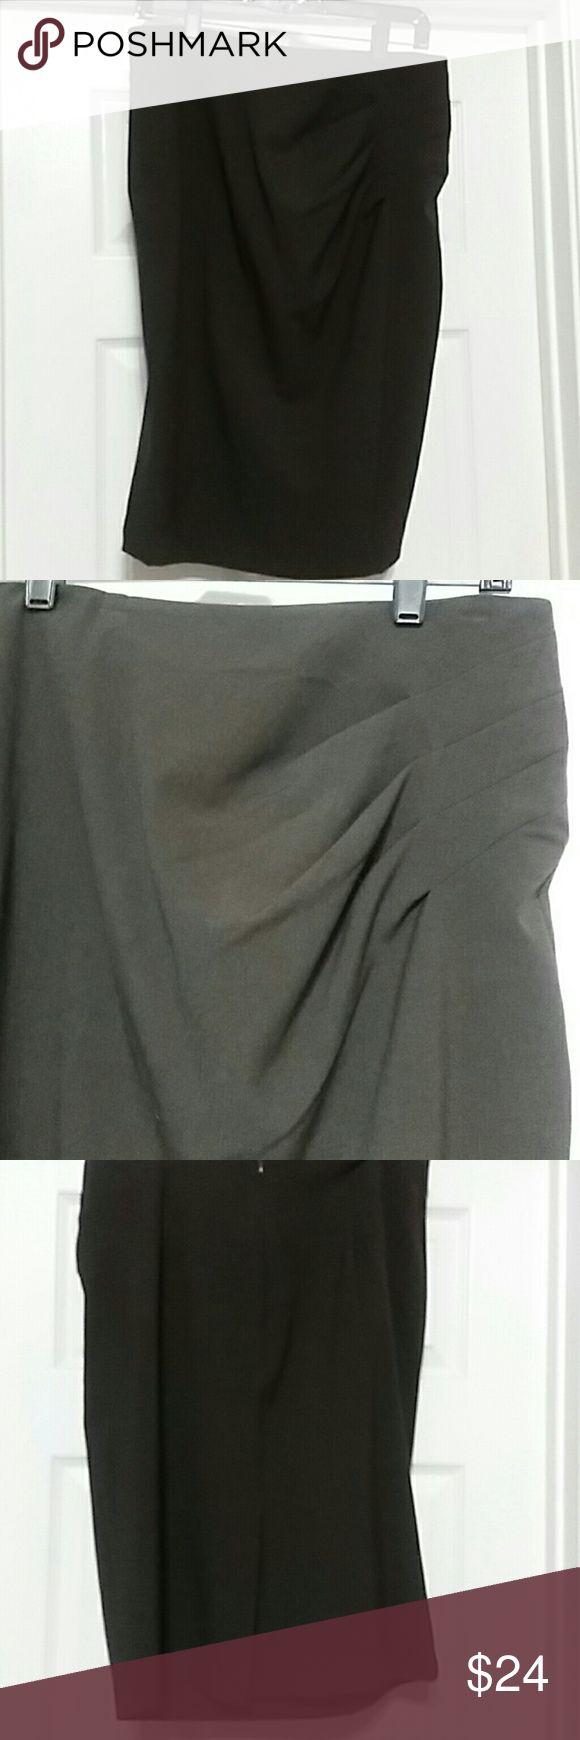 Pencil skirt Brown pencil skirt with pleated waist detail. Back zip and kick pleat Skirts Pencil